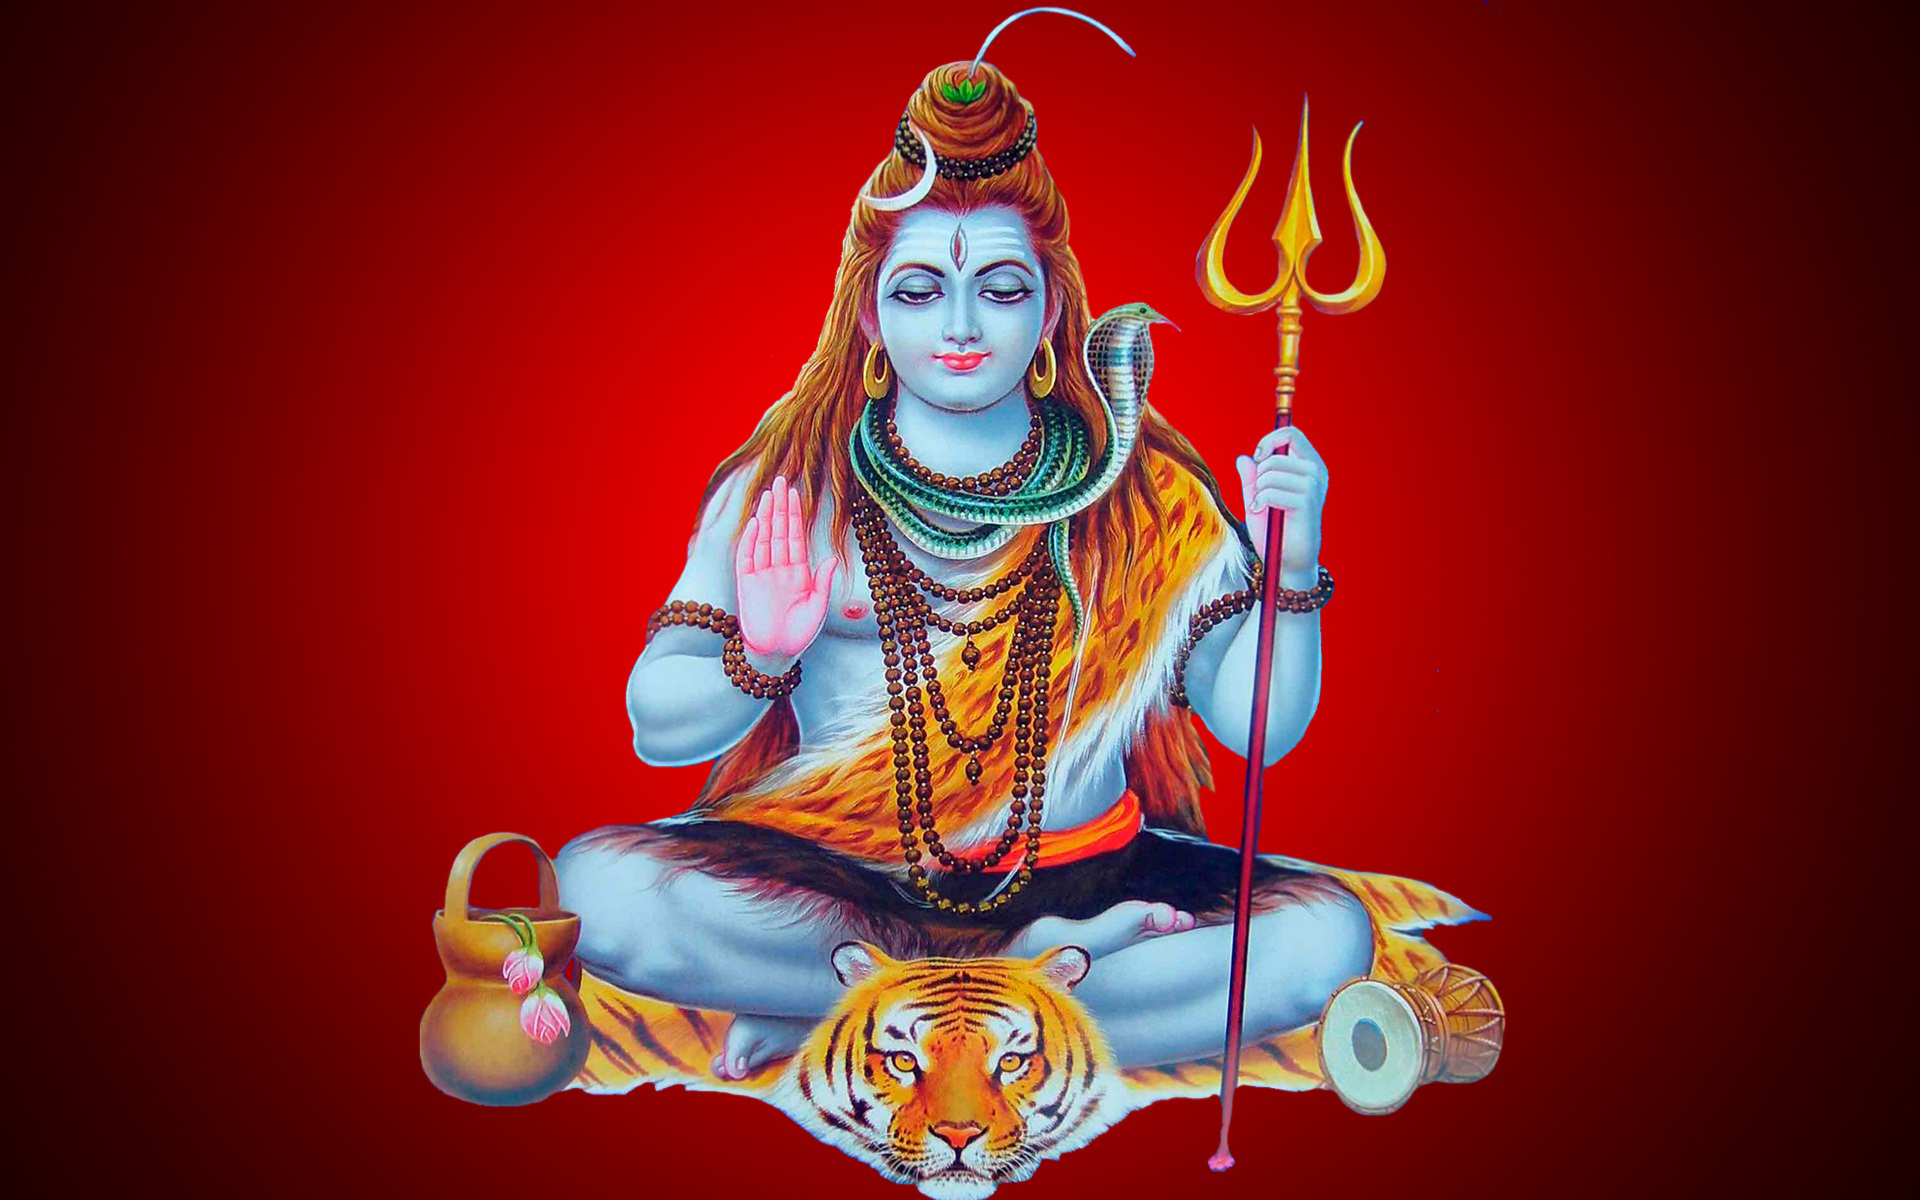 Shiva DP Maker : Mahakal Shiva Status 2018 - Apps on Google Play God shankar mahadev photo